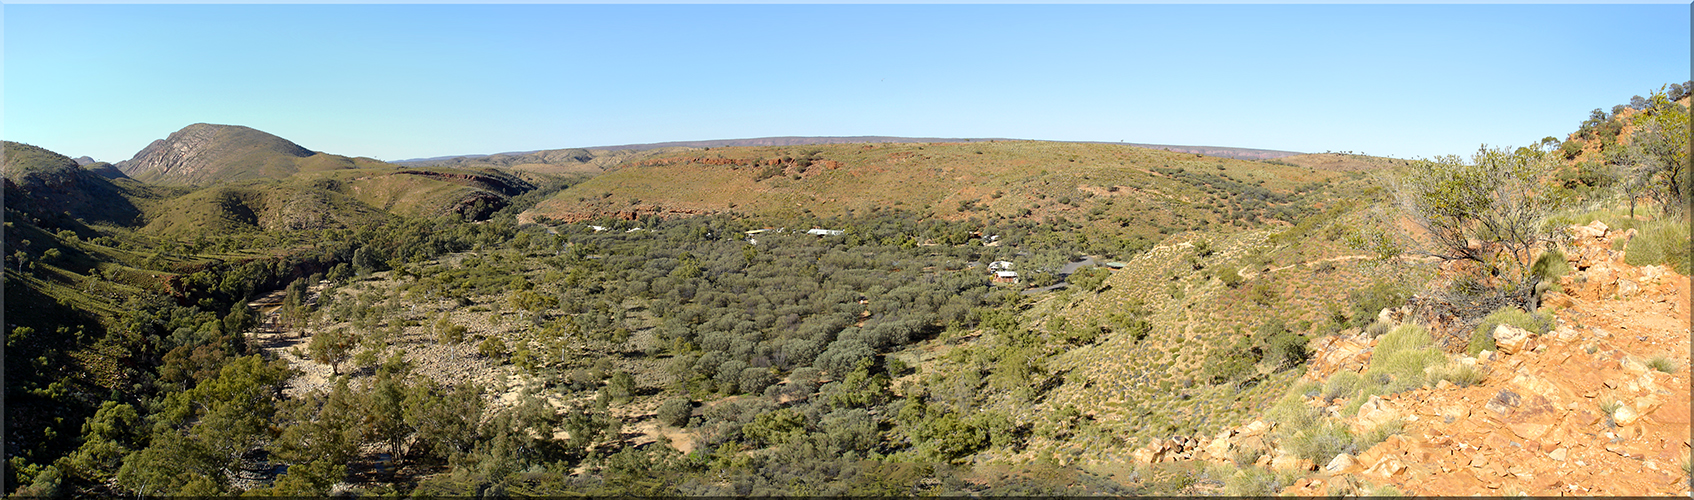 Ormiston Gorge, Panorama 2